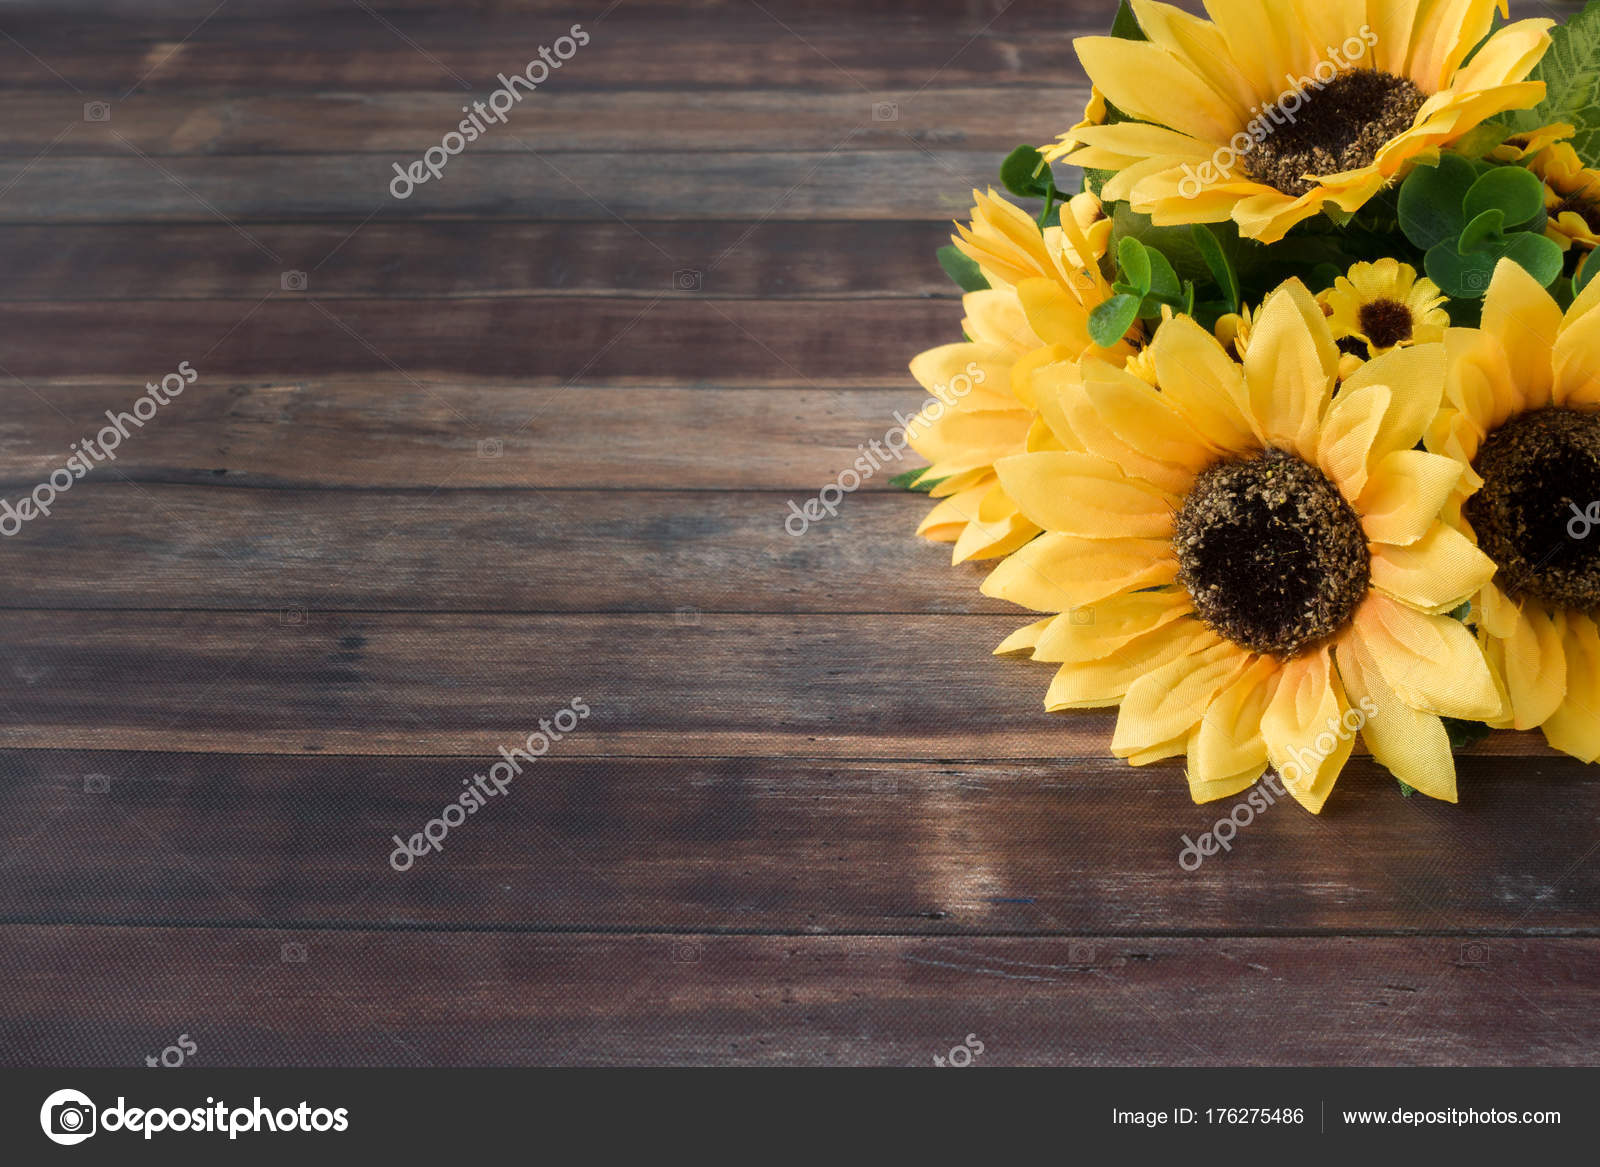 Sunflower Bouquet On Dark Brown Wooden Background Stock Photo C Tinasdreamworld 176275486